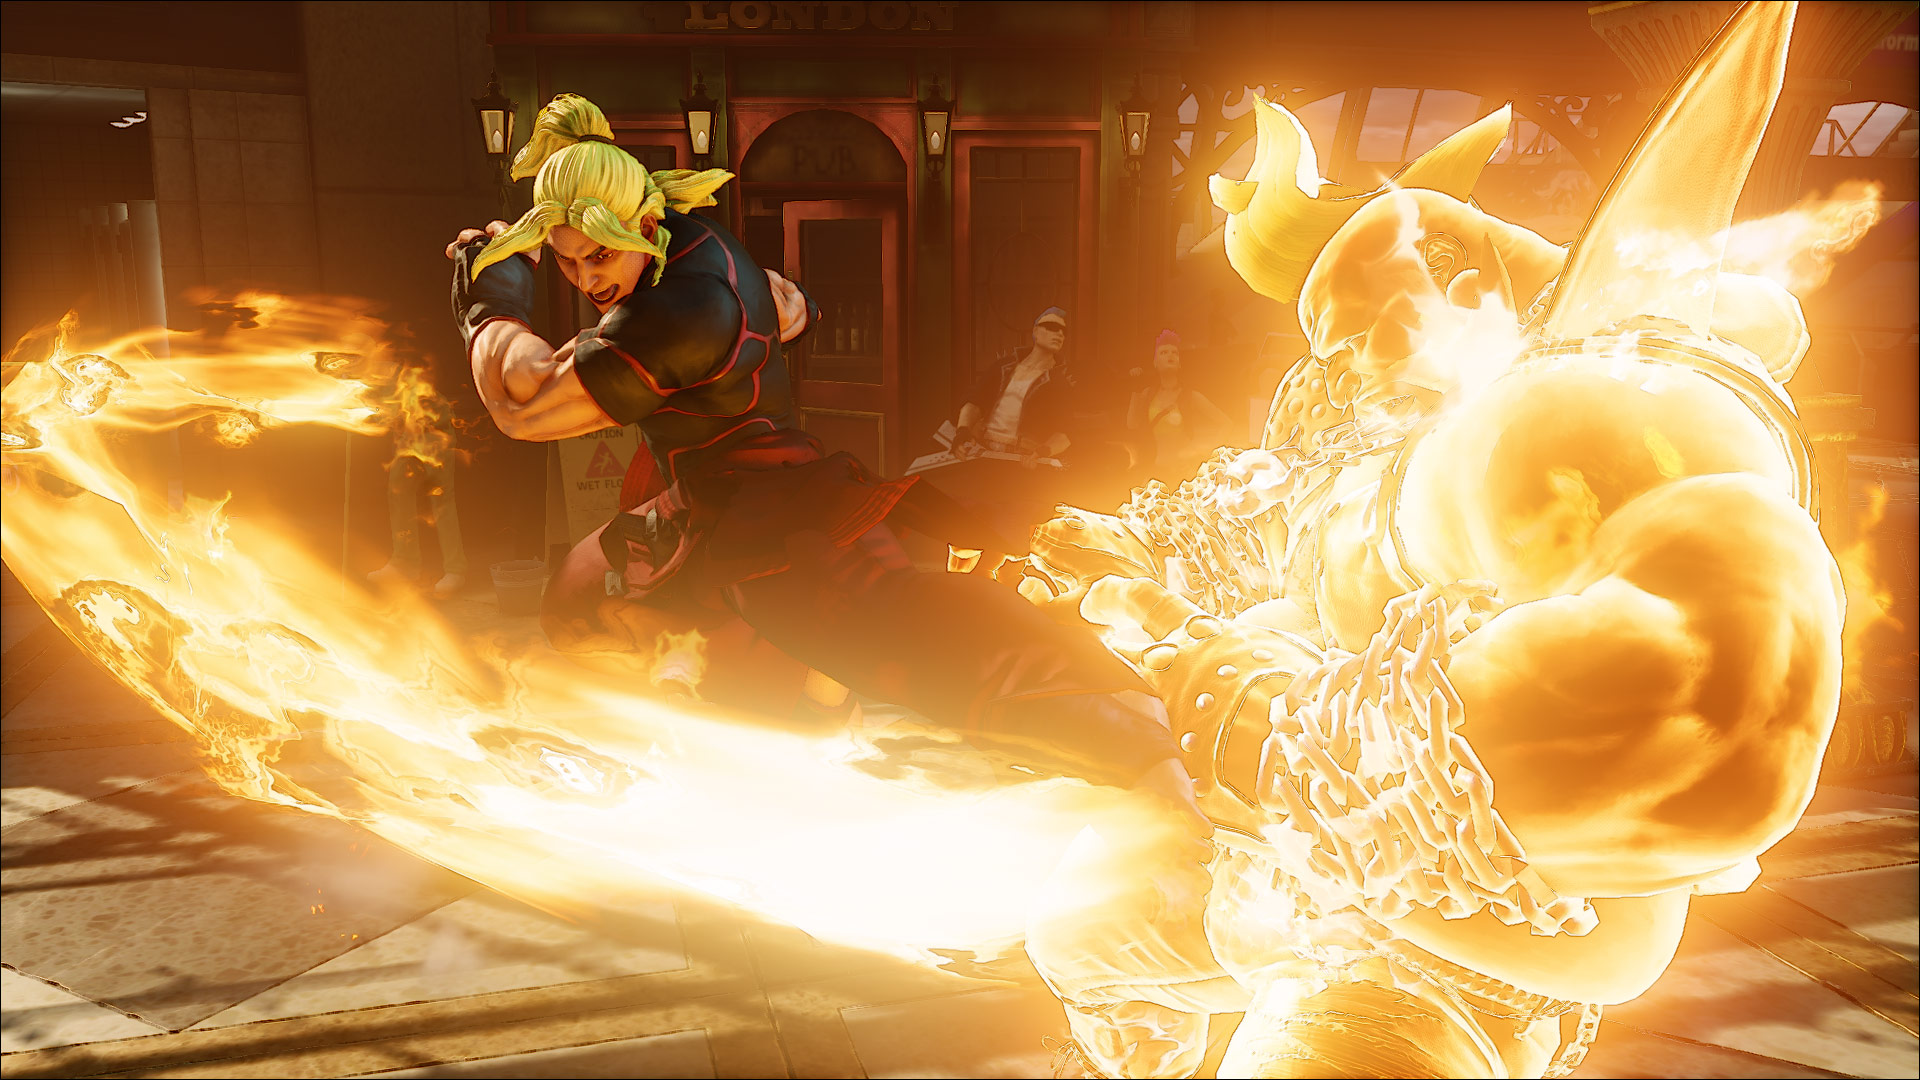 Ken Street Fighter 5 SDCC 2015 reveal 2 out of 13 image gallery